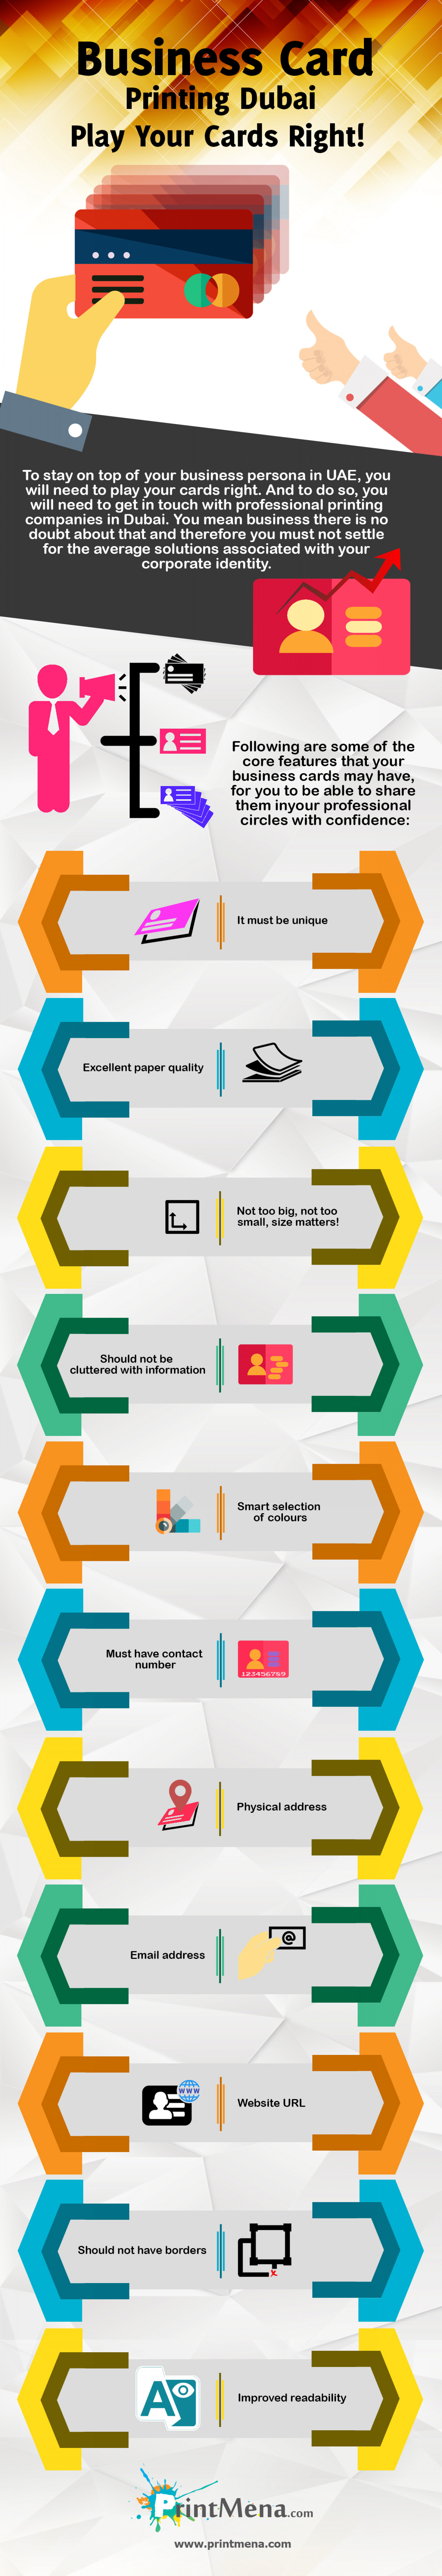 Business Card Printing Dubai, Play Your Cards Right Infographic